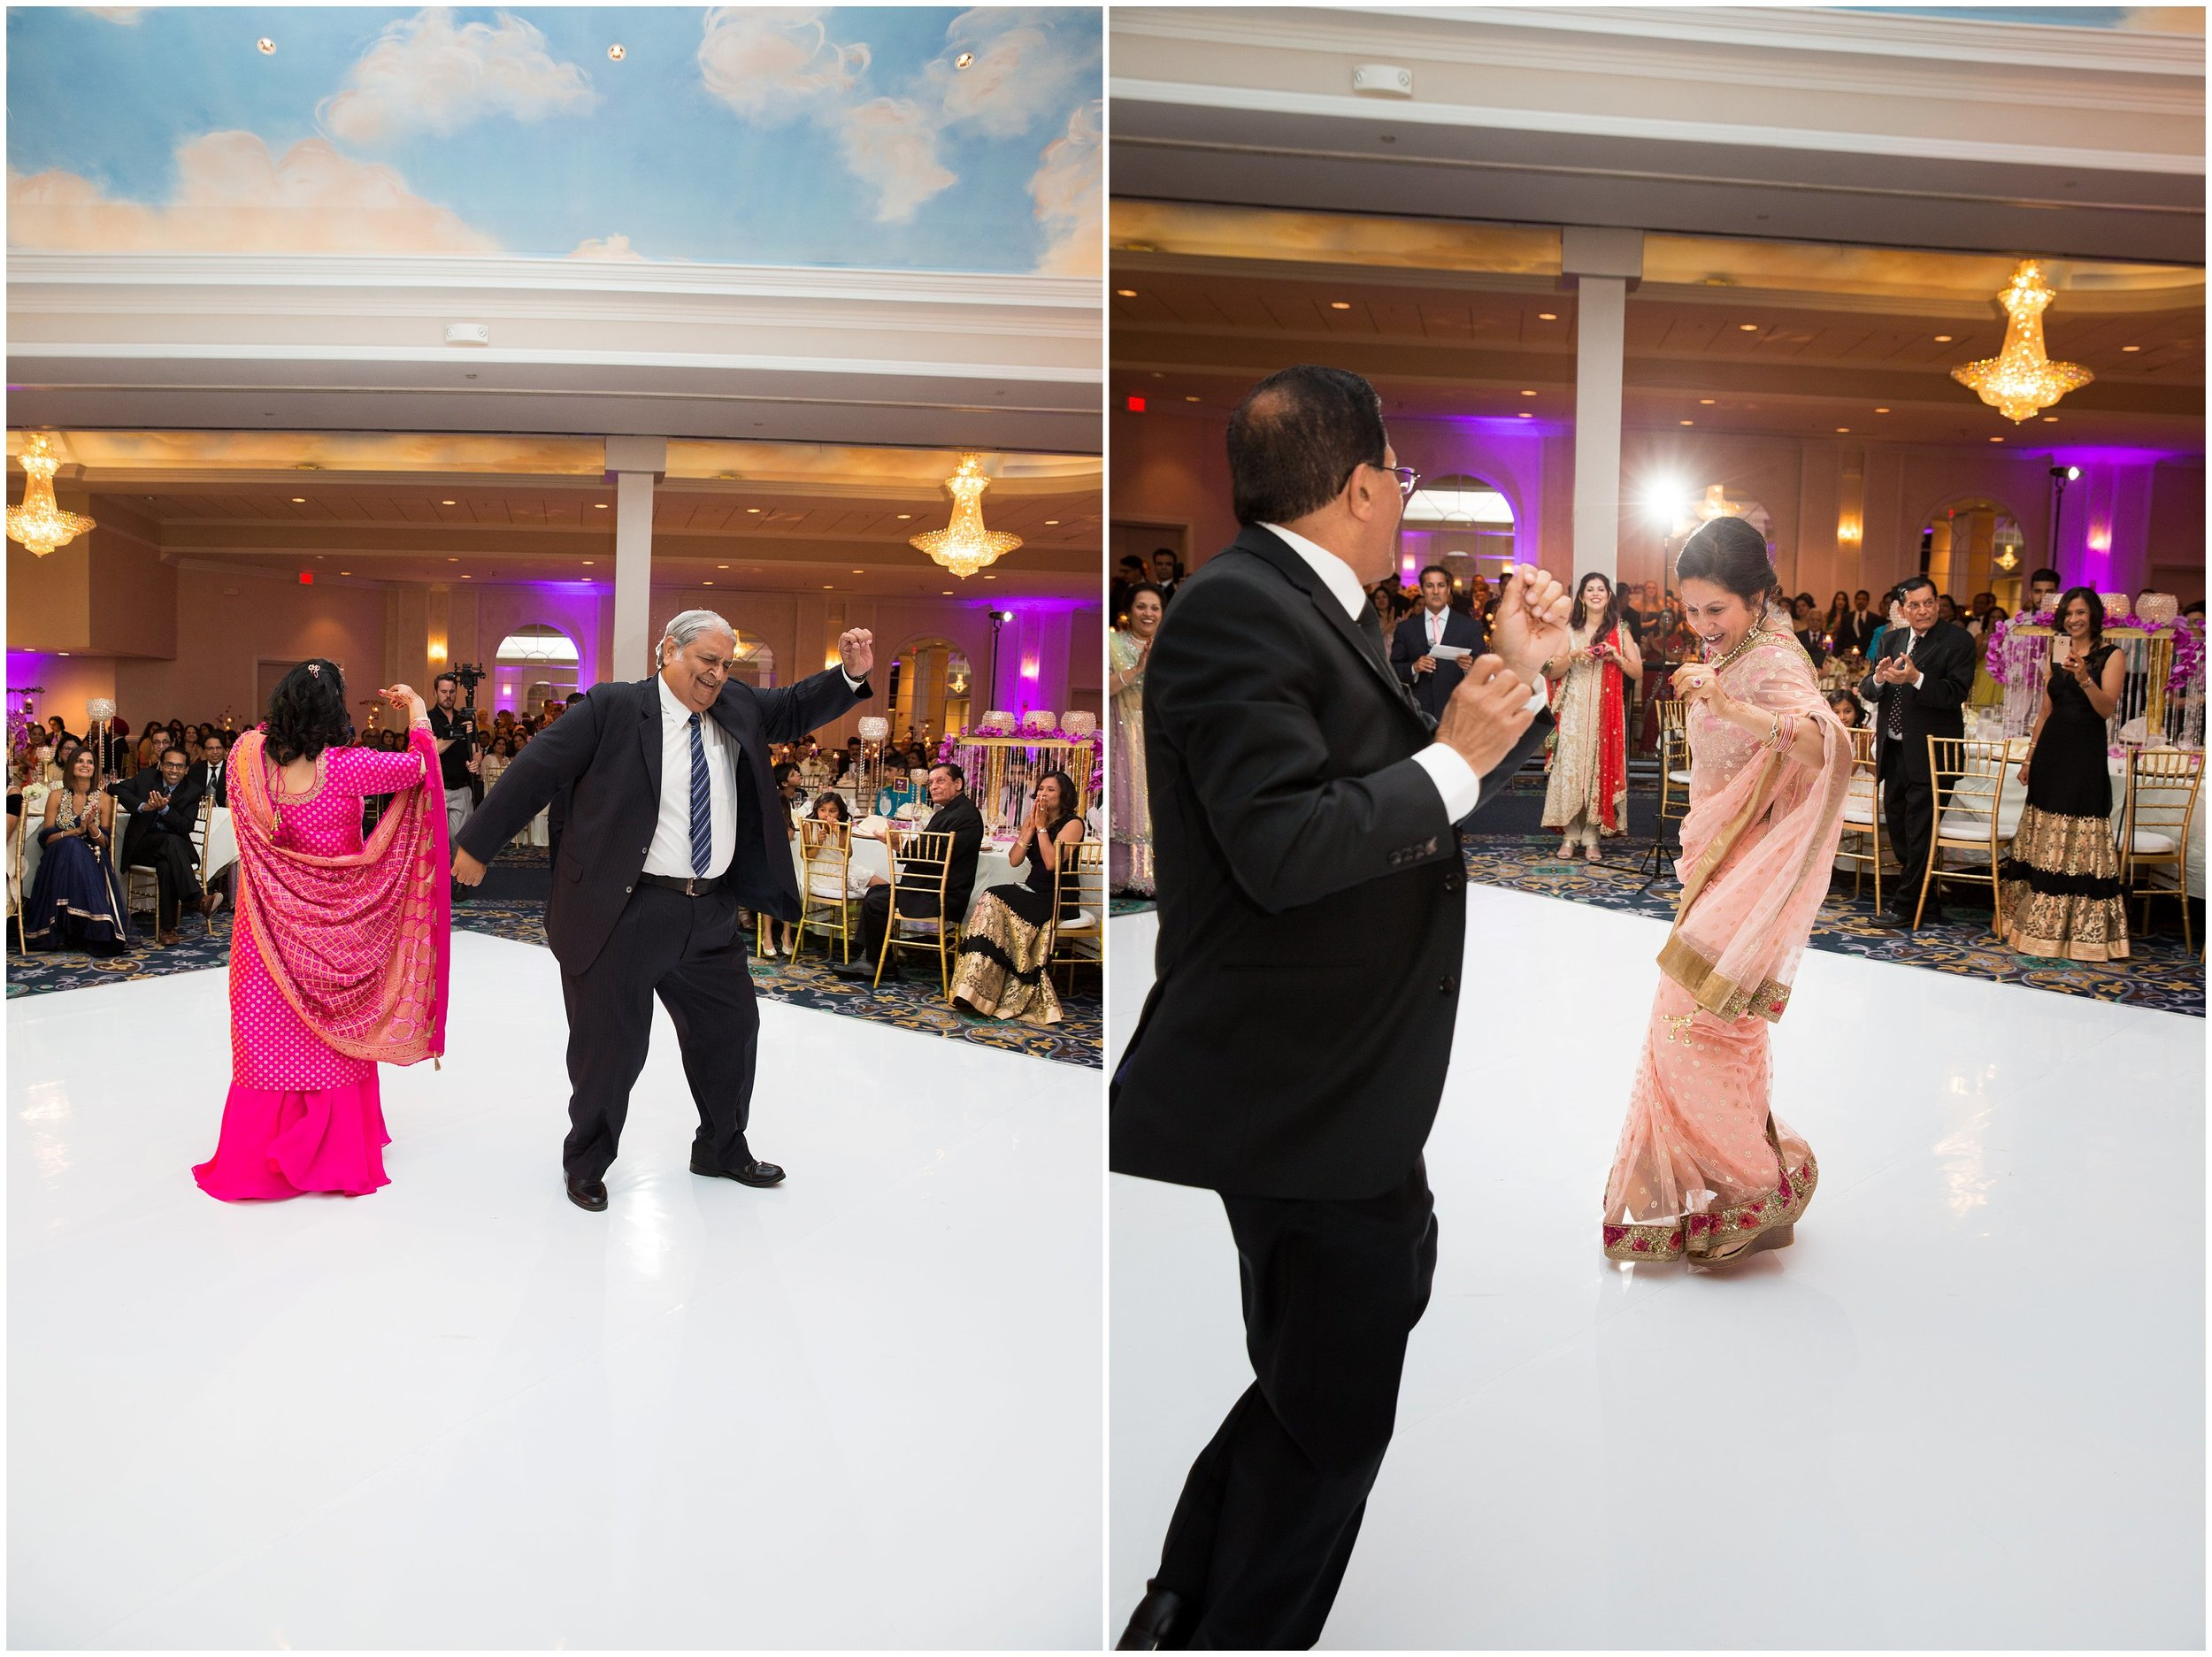 Le Cape Weddings - South Asian Wedding in Illinois - Tanvi and Anshul -0886_LuxuryDestinationPhotographer.jpg